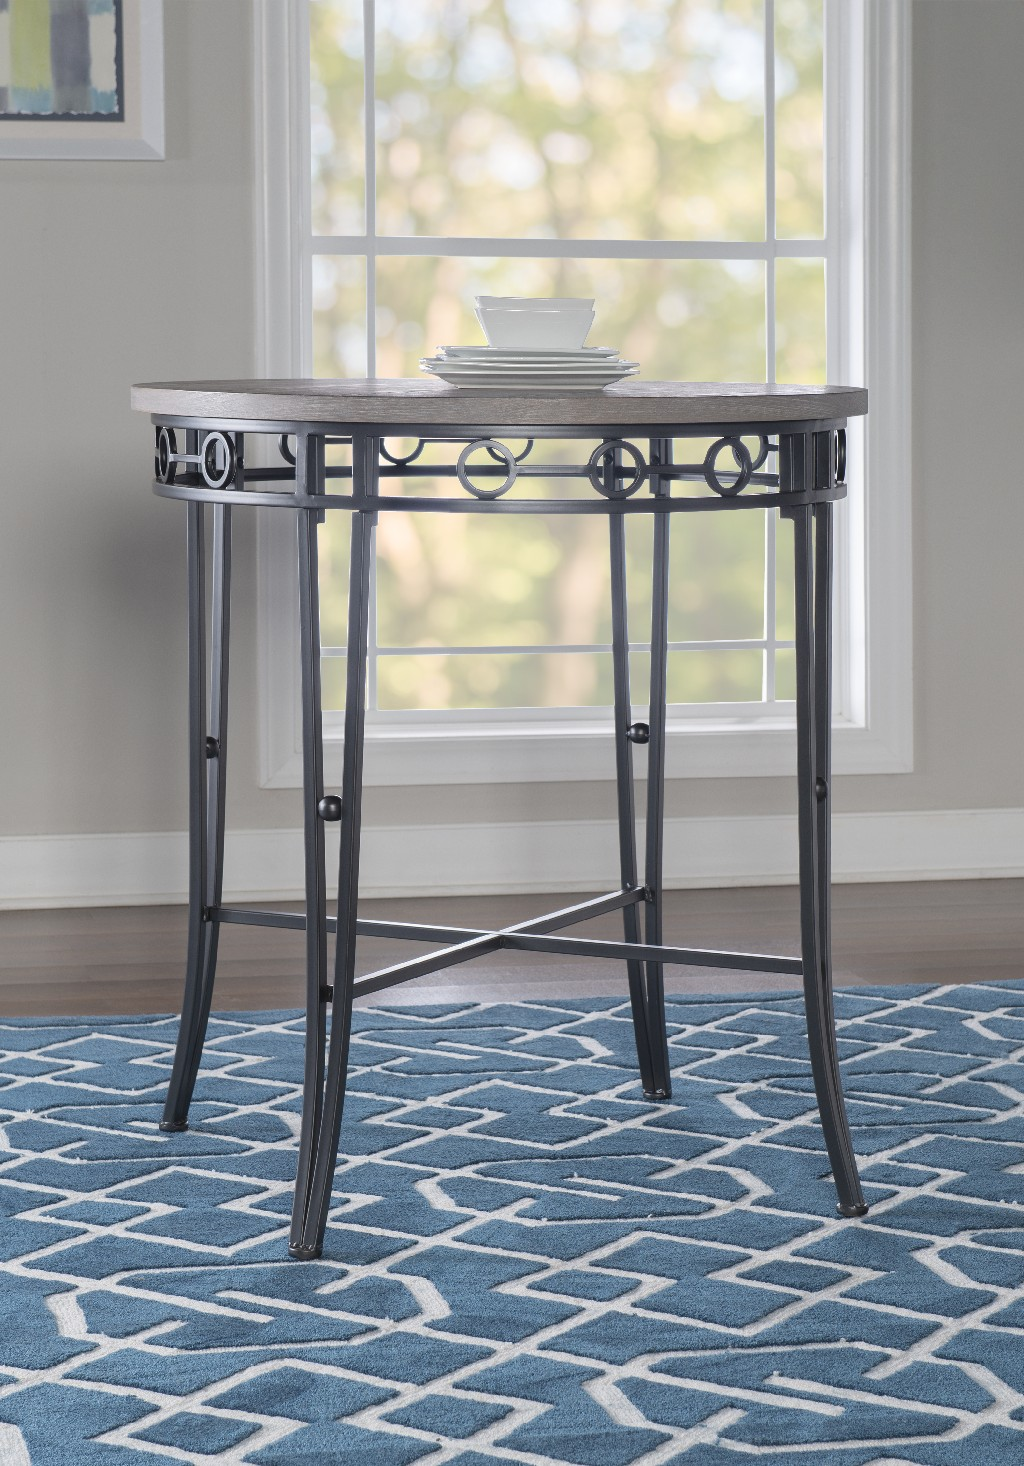 Barker Pub Table in Charcoal gray powder coat and finished in a light brown whitewash - Powell D1115D17PT